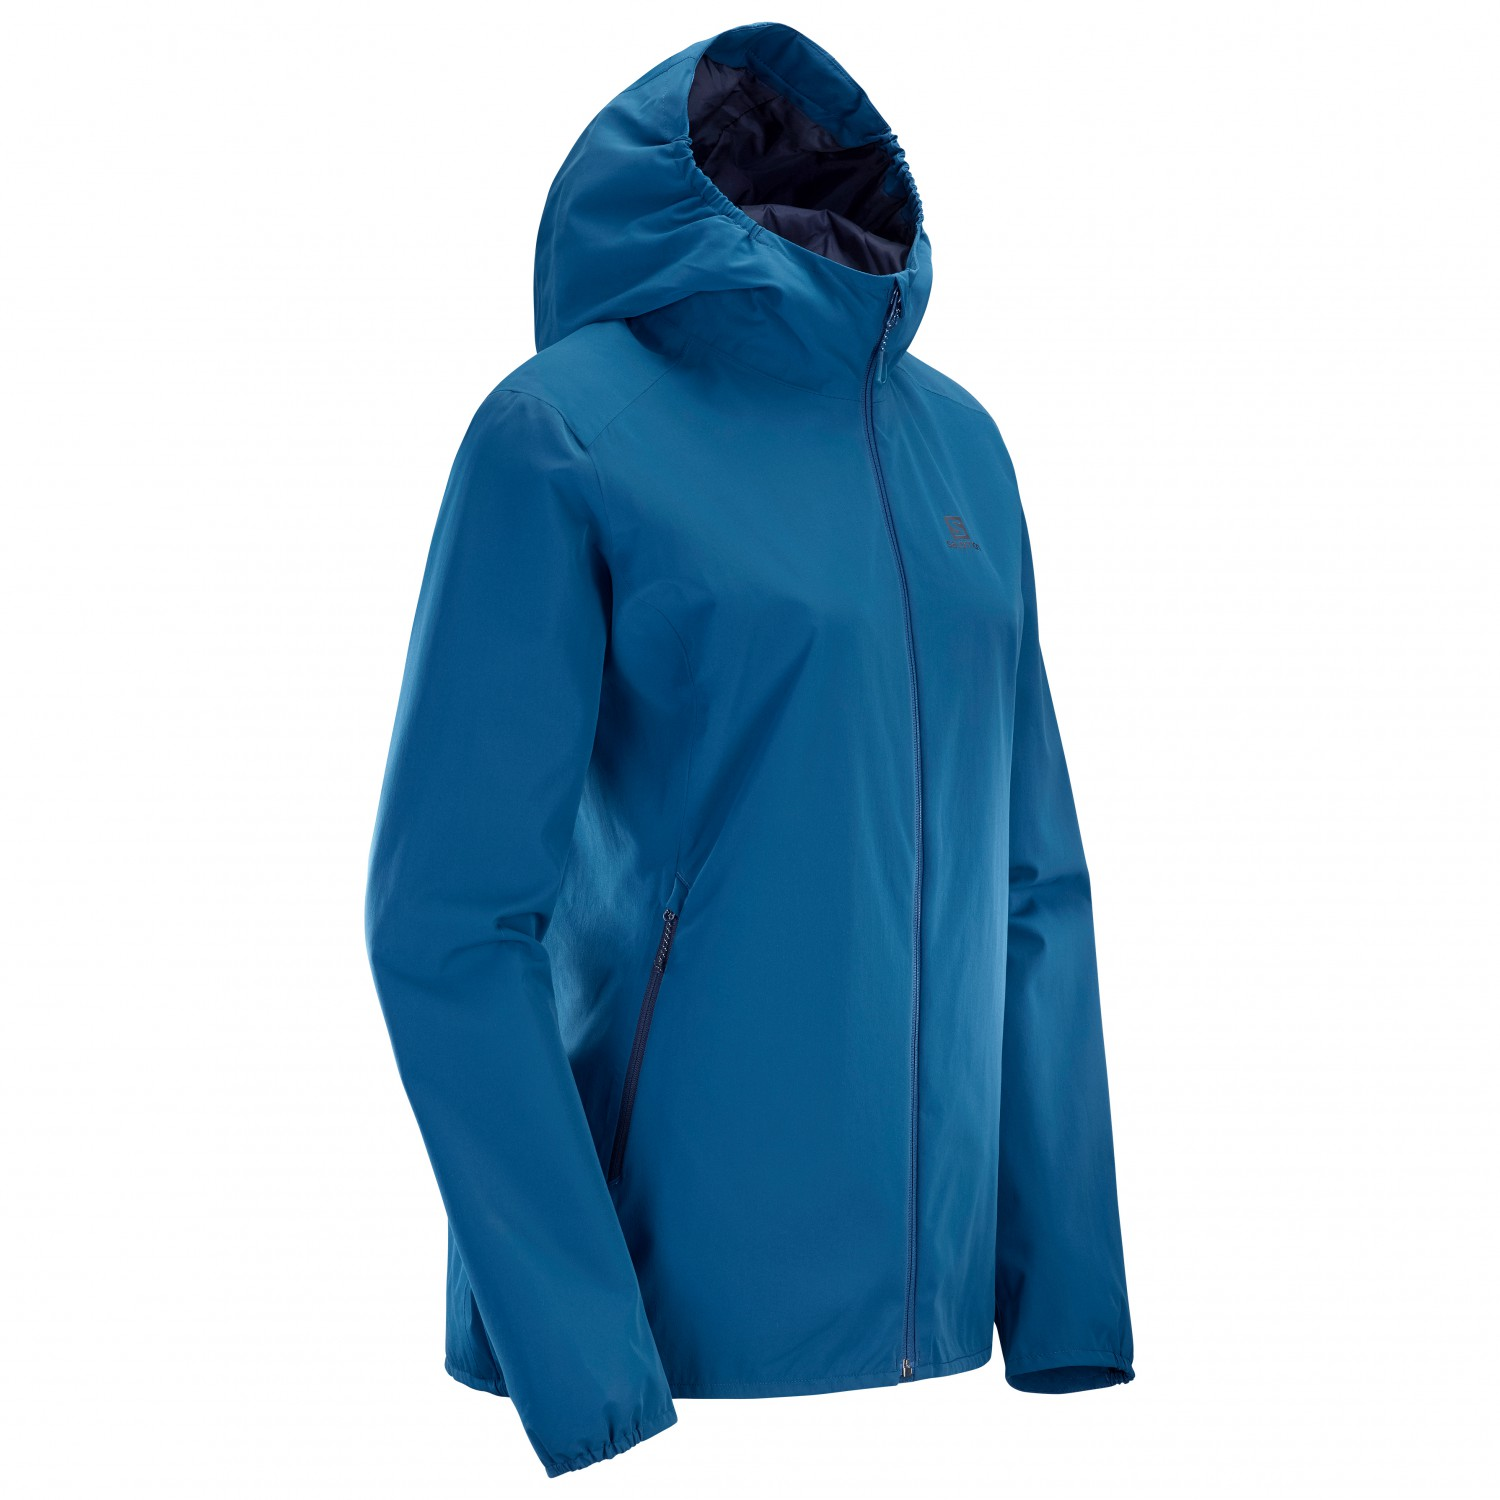 Salomon Women's Essential Jacket Hardshelljacke